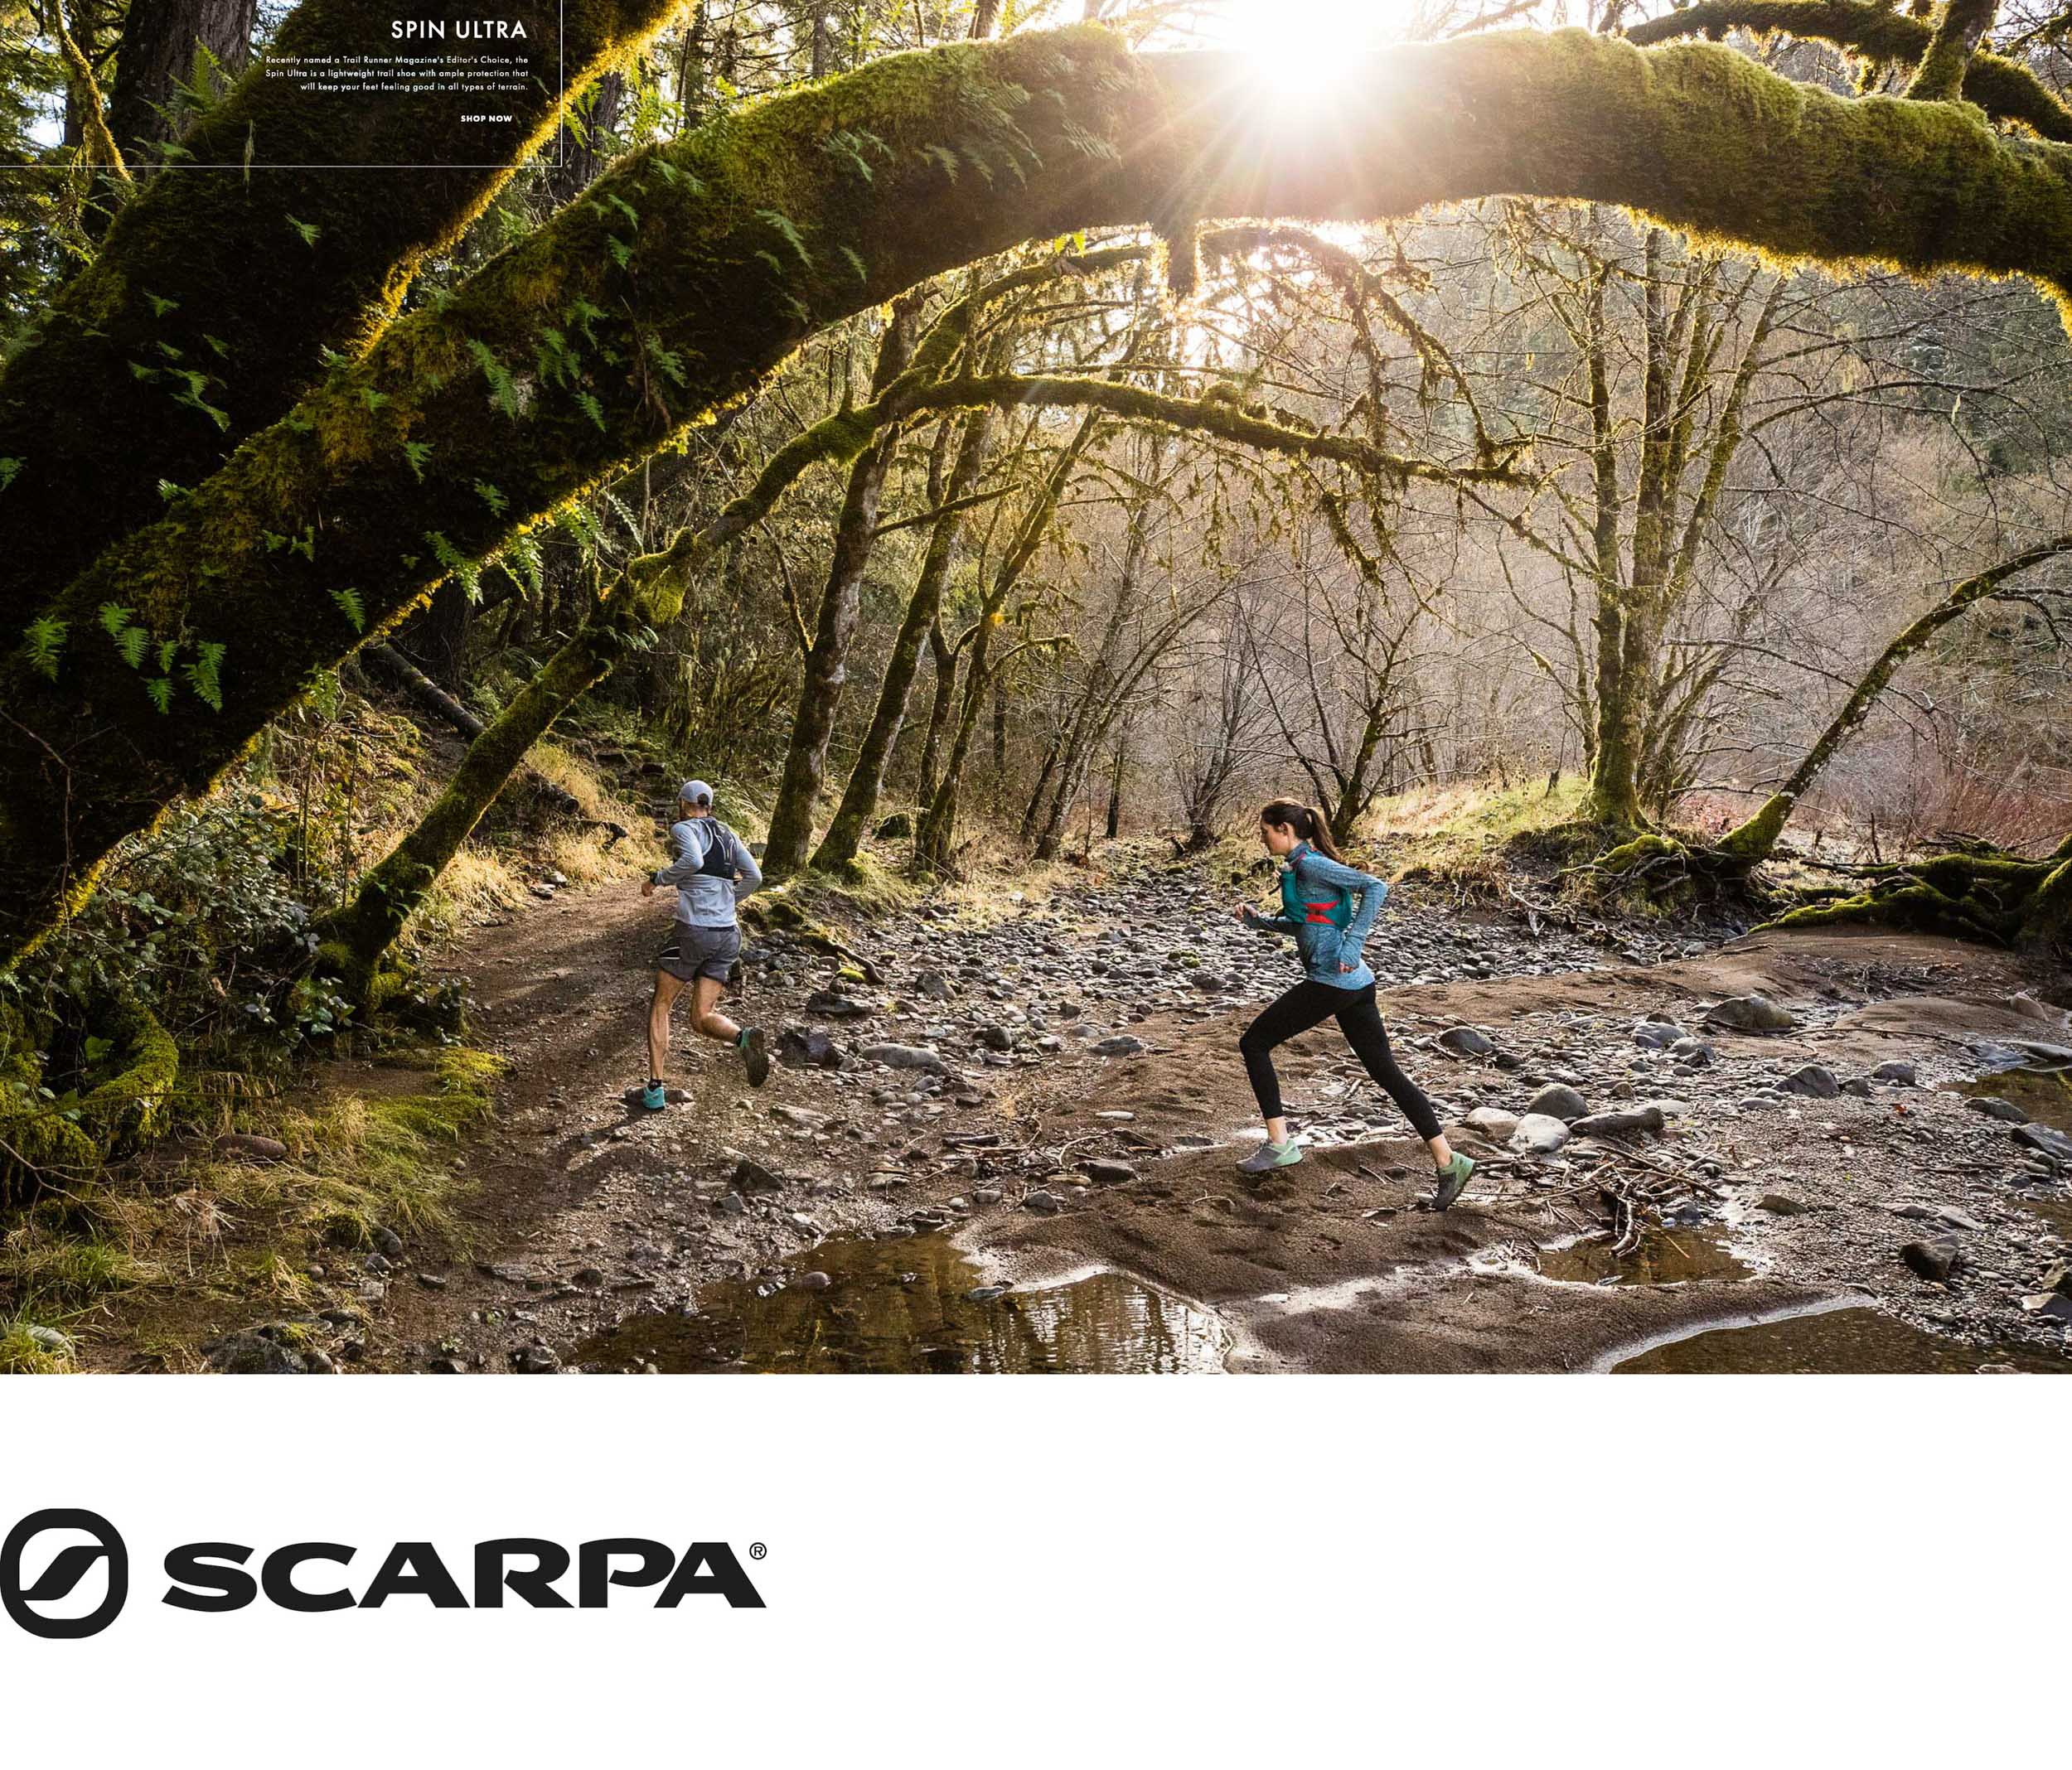 scarpa-womens-scenic-photo-trail-running-mens-spring-summer-fall-photographer-lifestyle.JPG